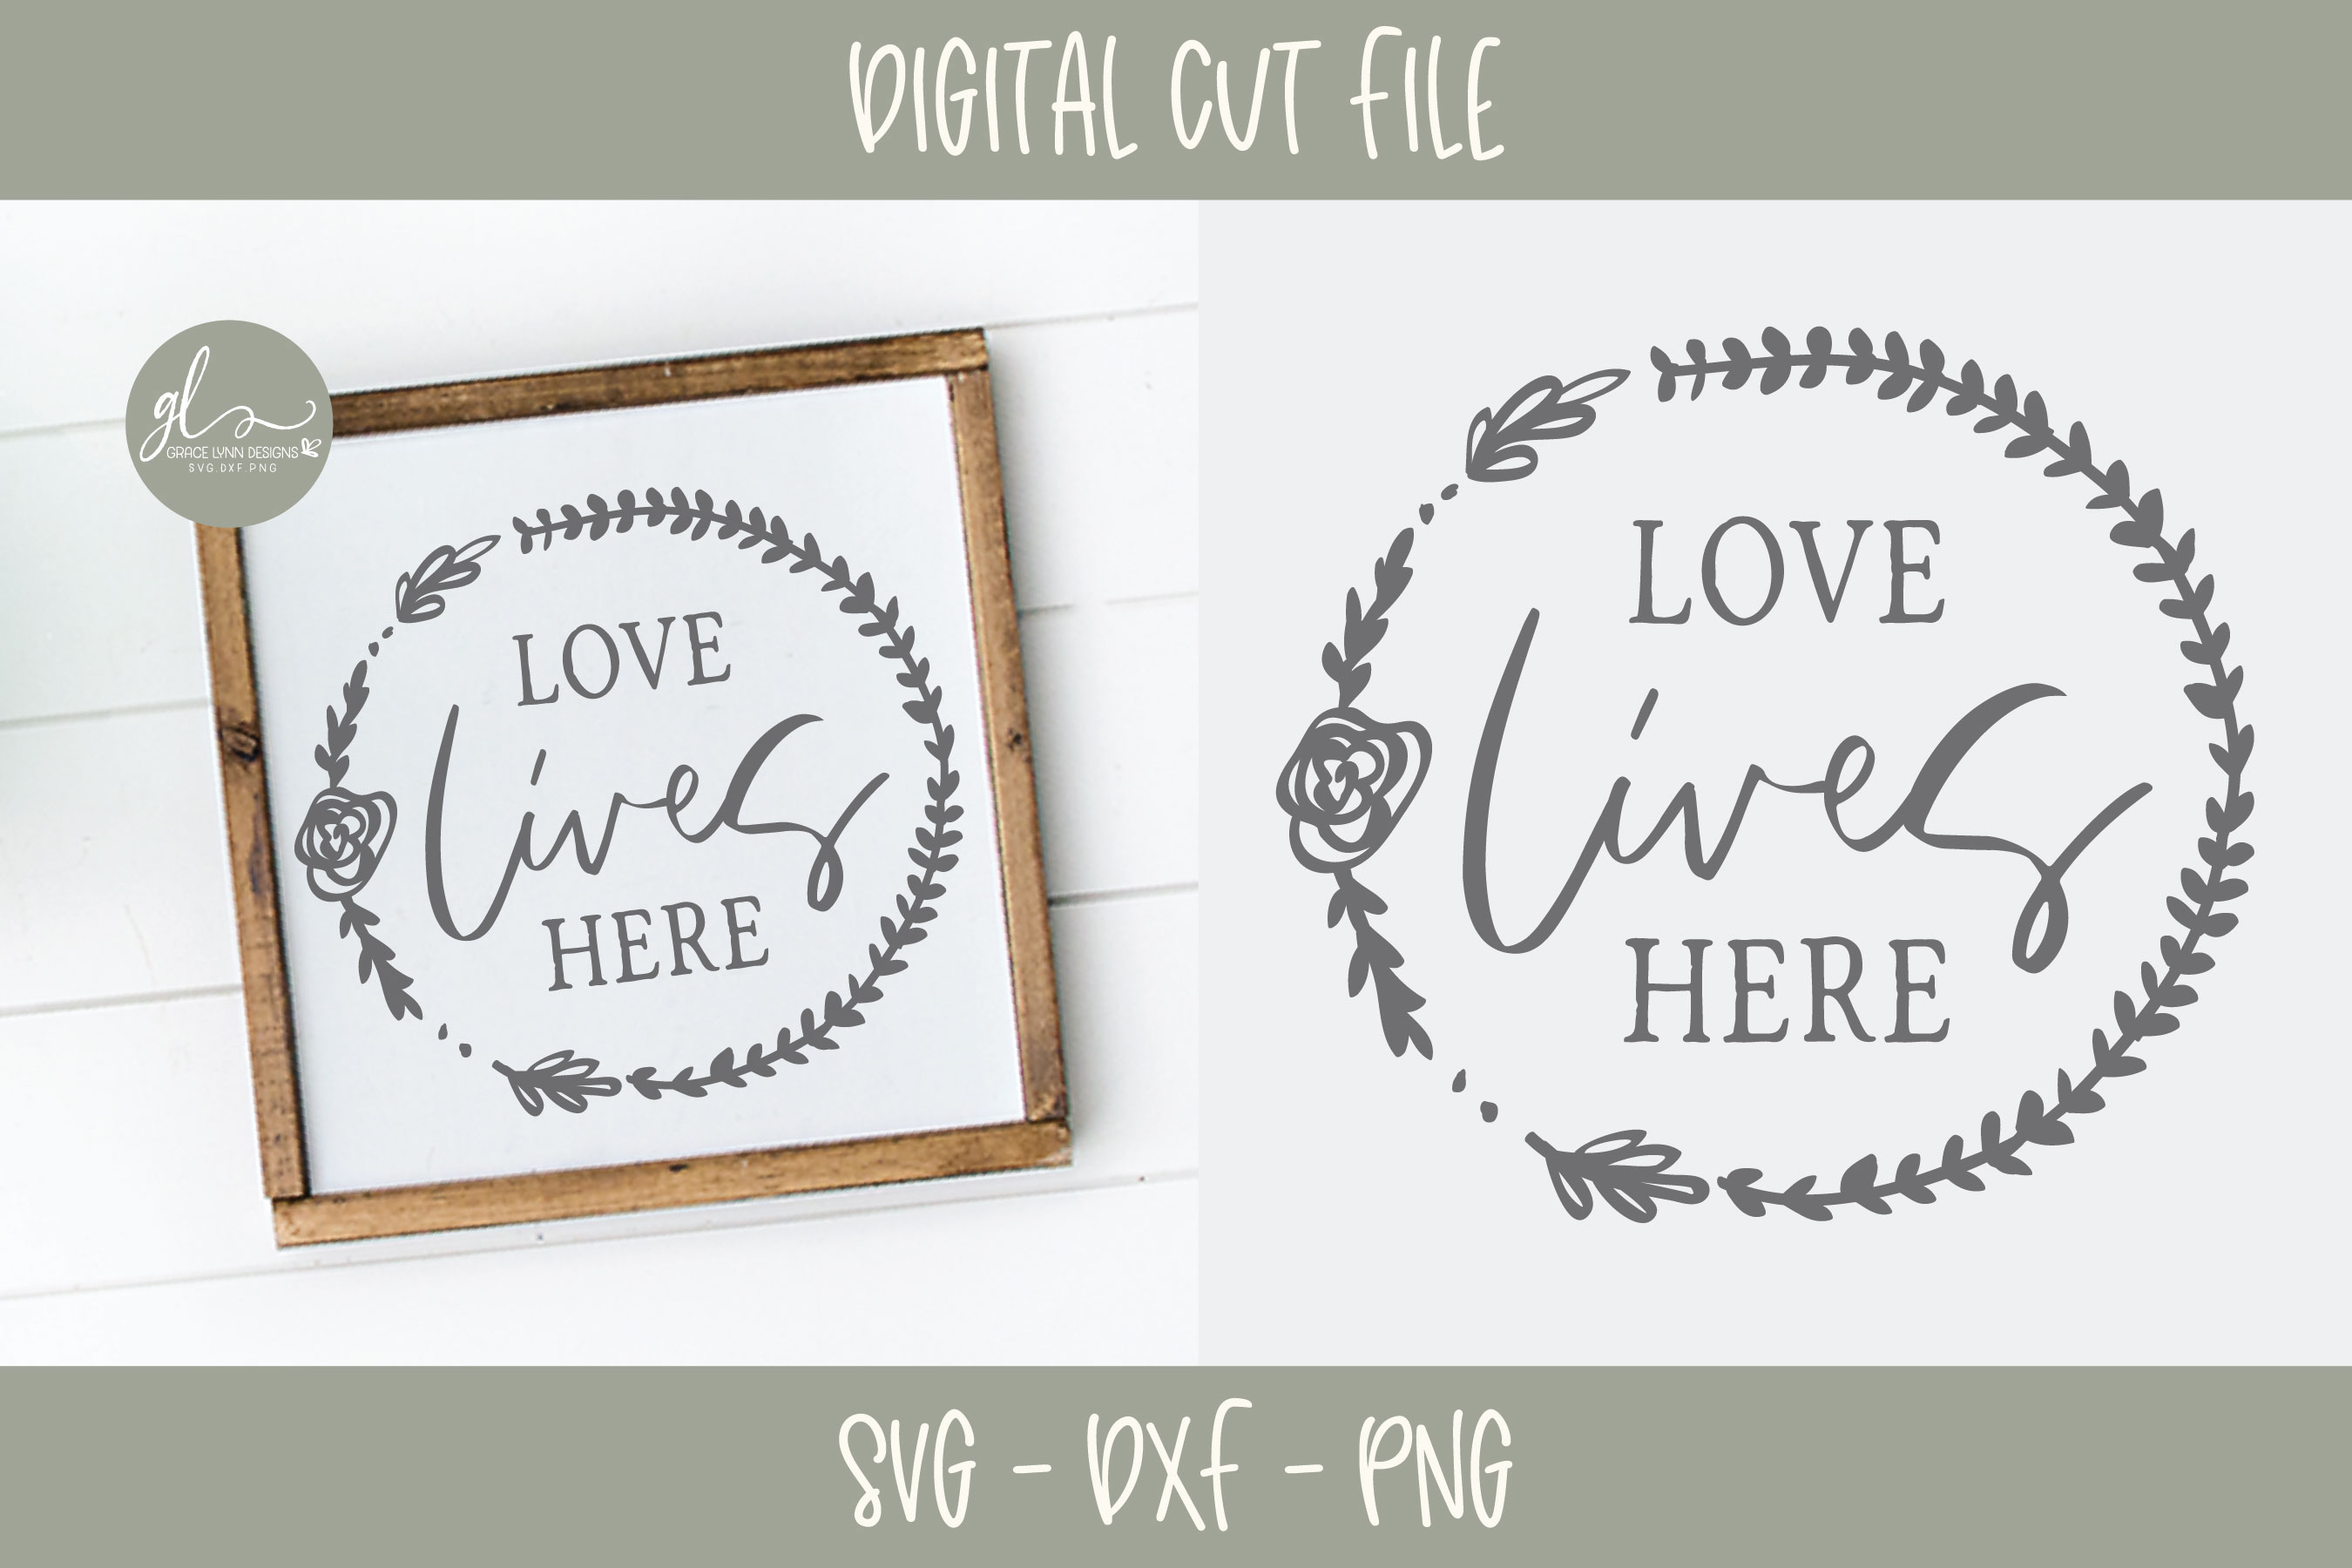 Love Lives Here - SVG Cut File example image 1